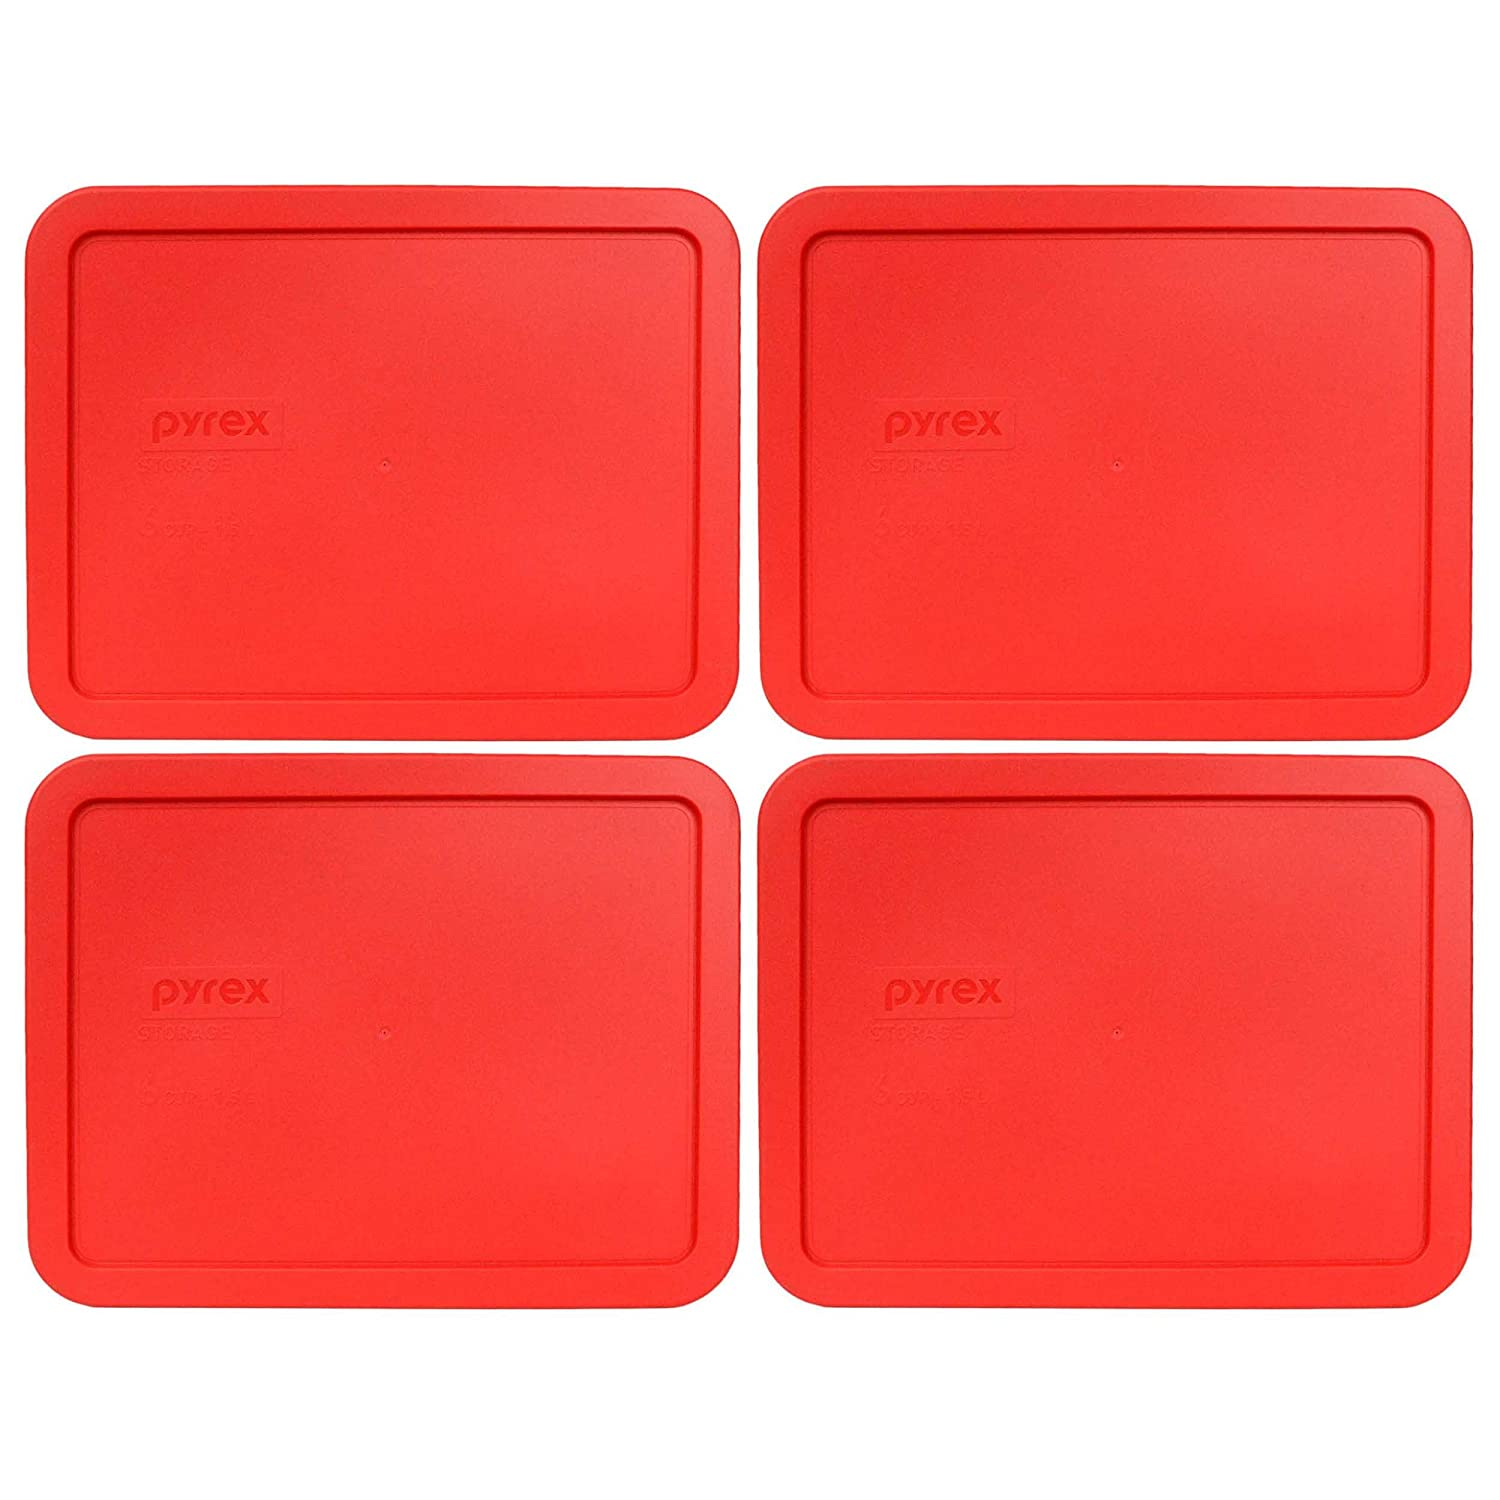 Pyrex 7211-PC 6 Cup Red Rectangle Food Storage Lid for Glass Dish (4, Red)